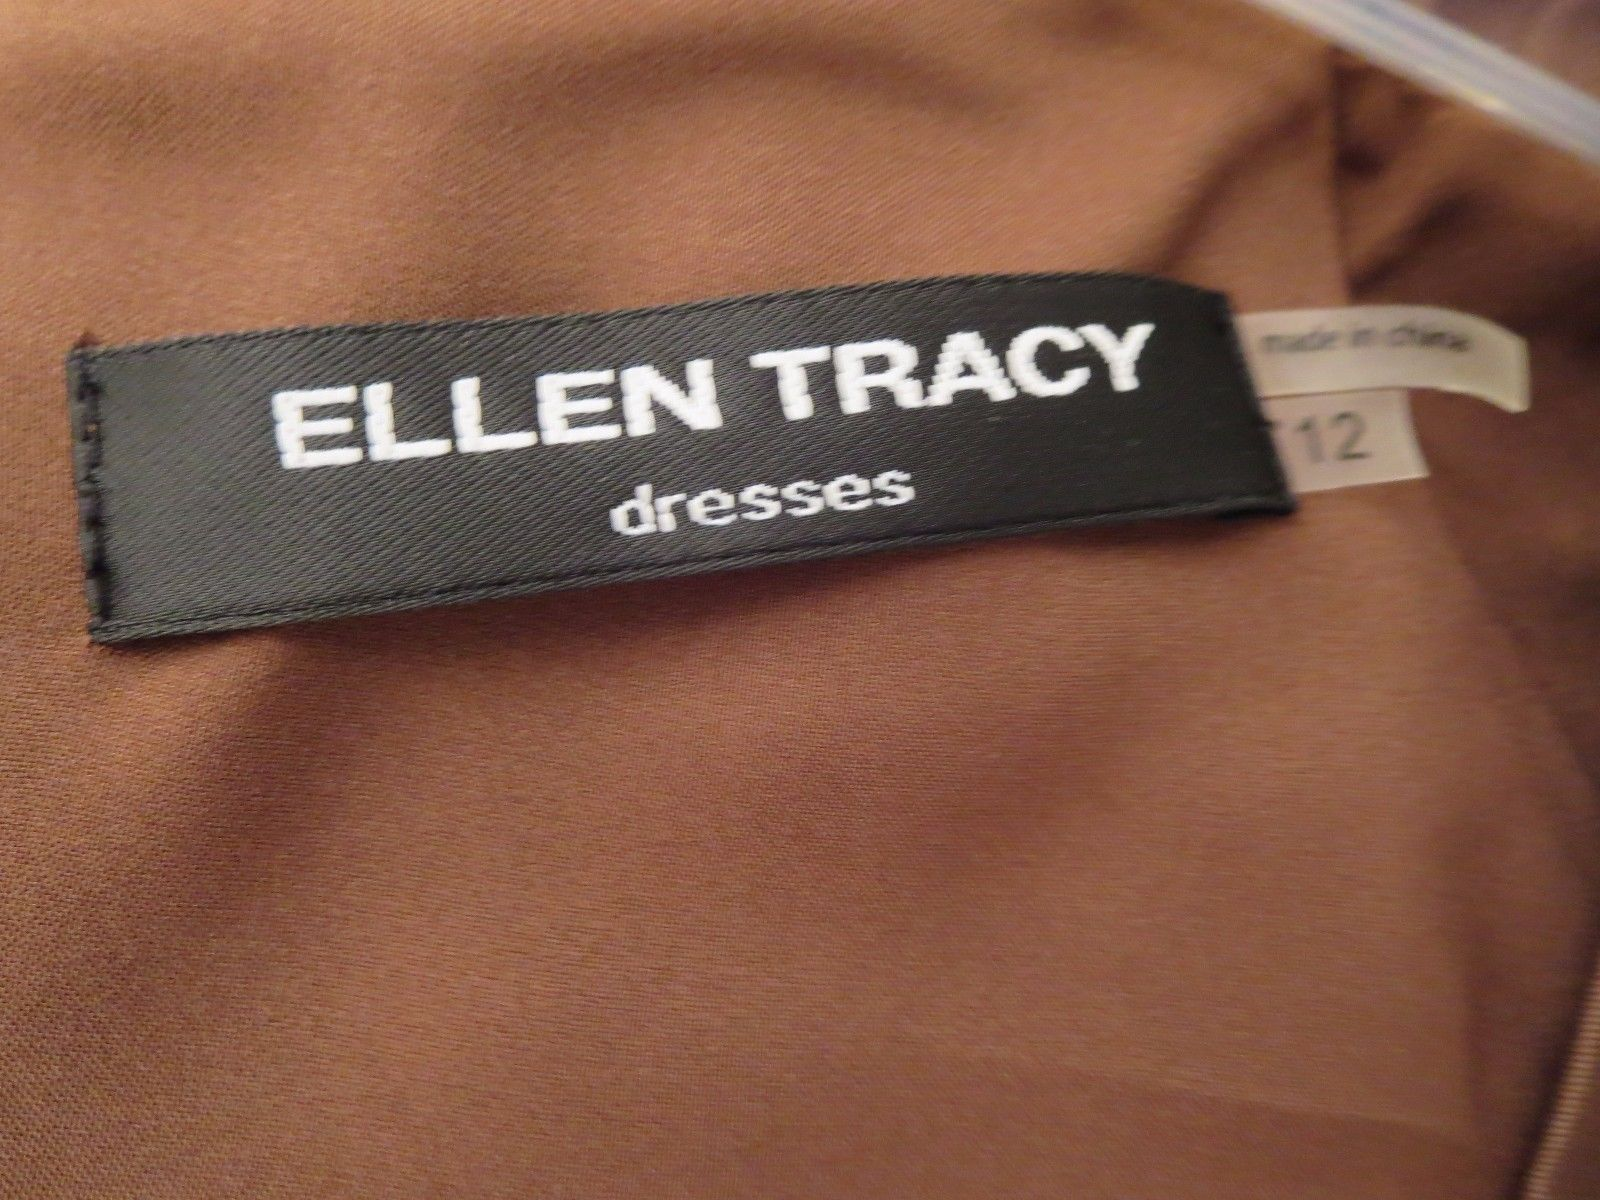 Ellen Tracy 70% OFF Women's Size 12 Dress Brown S/S Empire Waist New With Tags